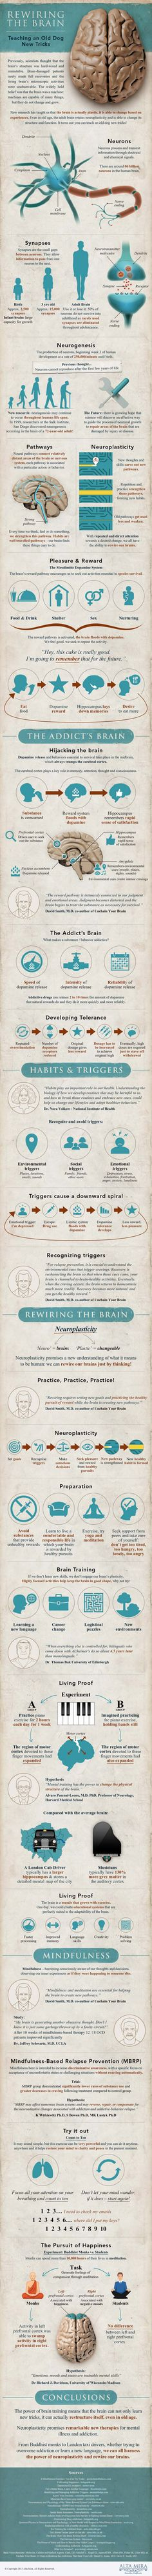 Neuroplasticity creates new possibilities for addiction treatment, as we break the cycle of addiction and reorient the brain toward healthy responses.